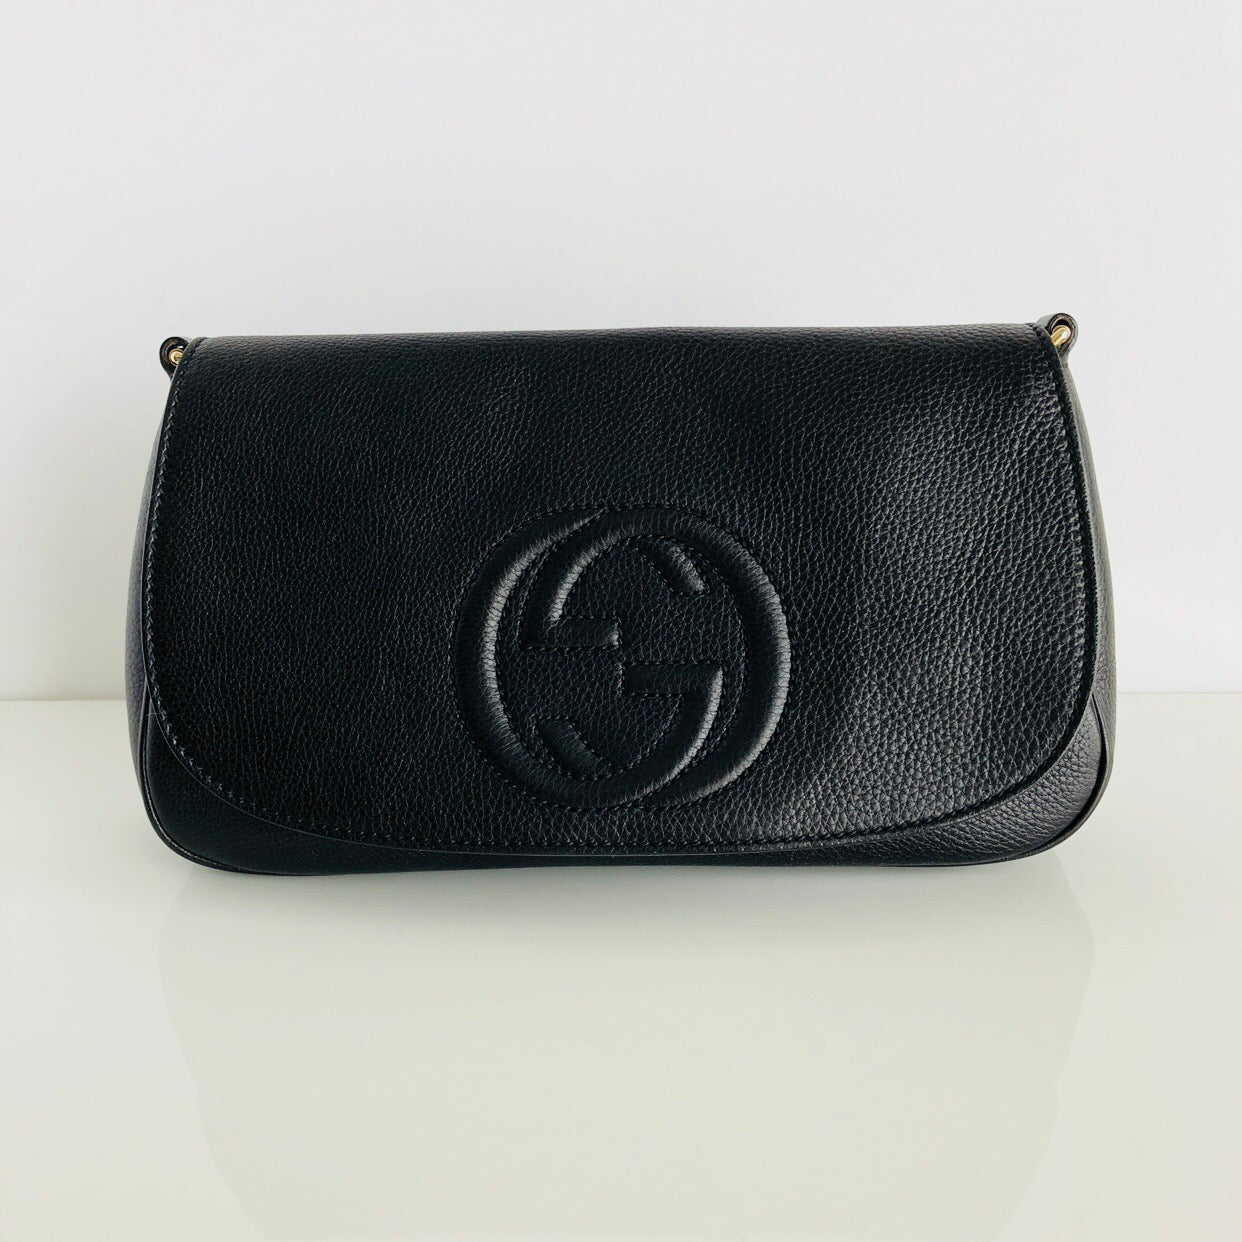 Authentic GUCCI Black Soho Clutch Bag